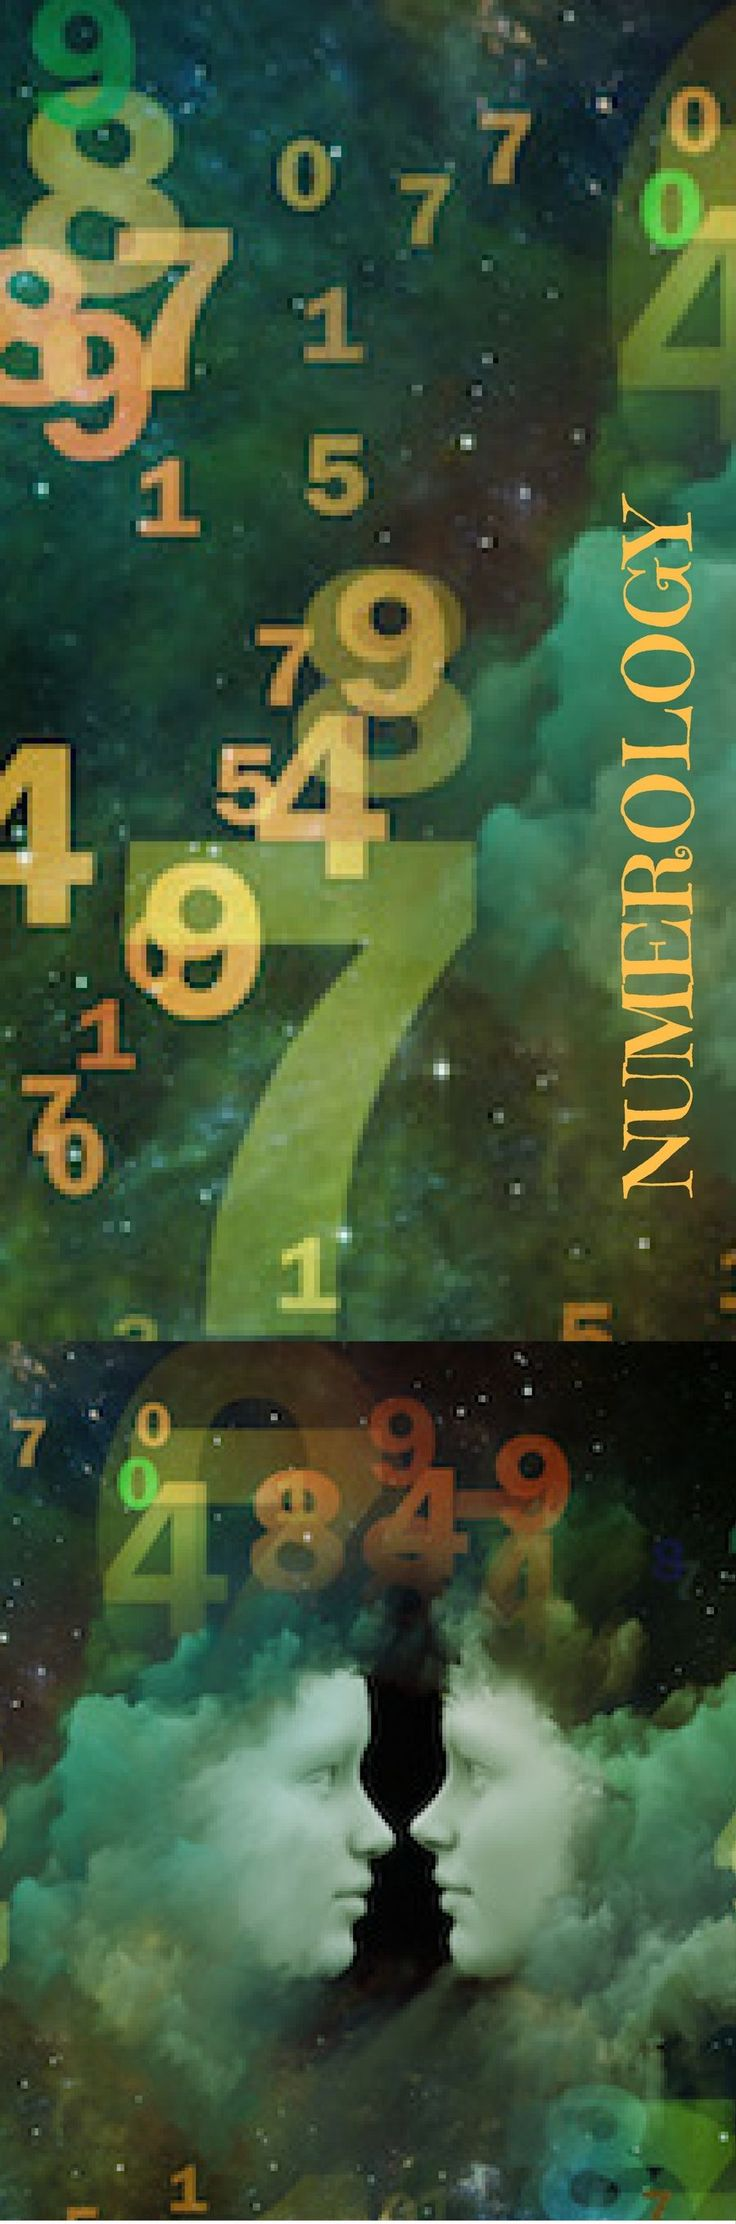 This comprehensive and highly revealing reading includes calculations based on your name and date of birth as well as shockingly accurate forecasts for every day, starting today, for the next 9 years! There's no better time than now to finally decode your Numerological destiny. http://vid.staged.com/jPWs